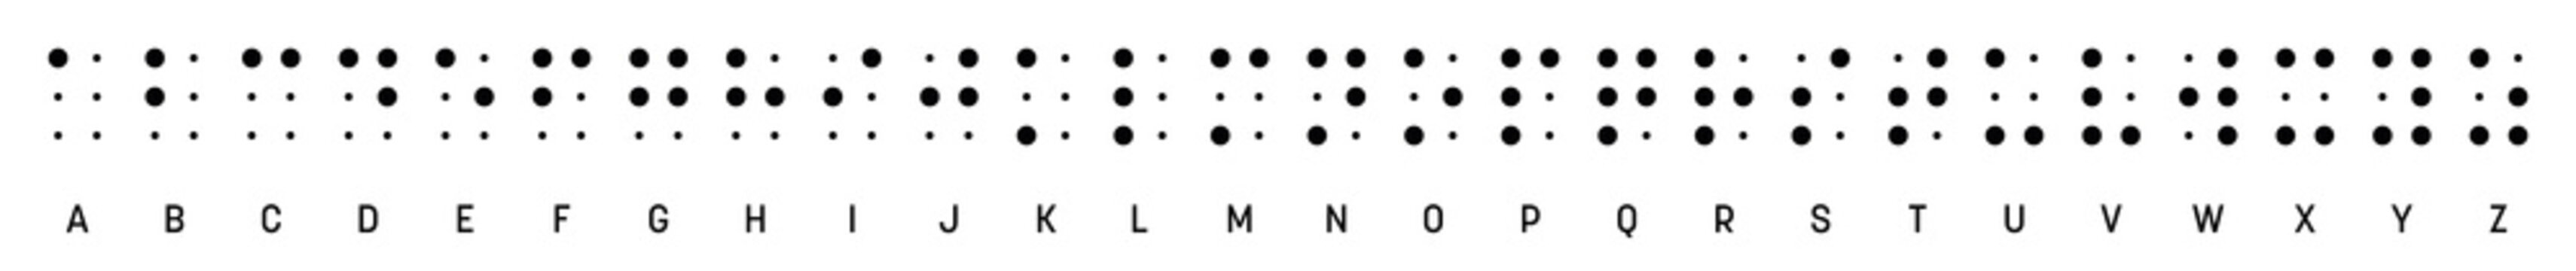 Braille alphabet letters in a row. Braille is a tactile writing system used by blind or visually impaired people. Vector illustration in black and white